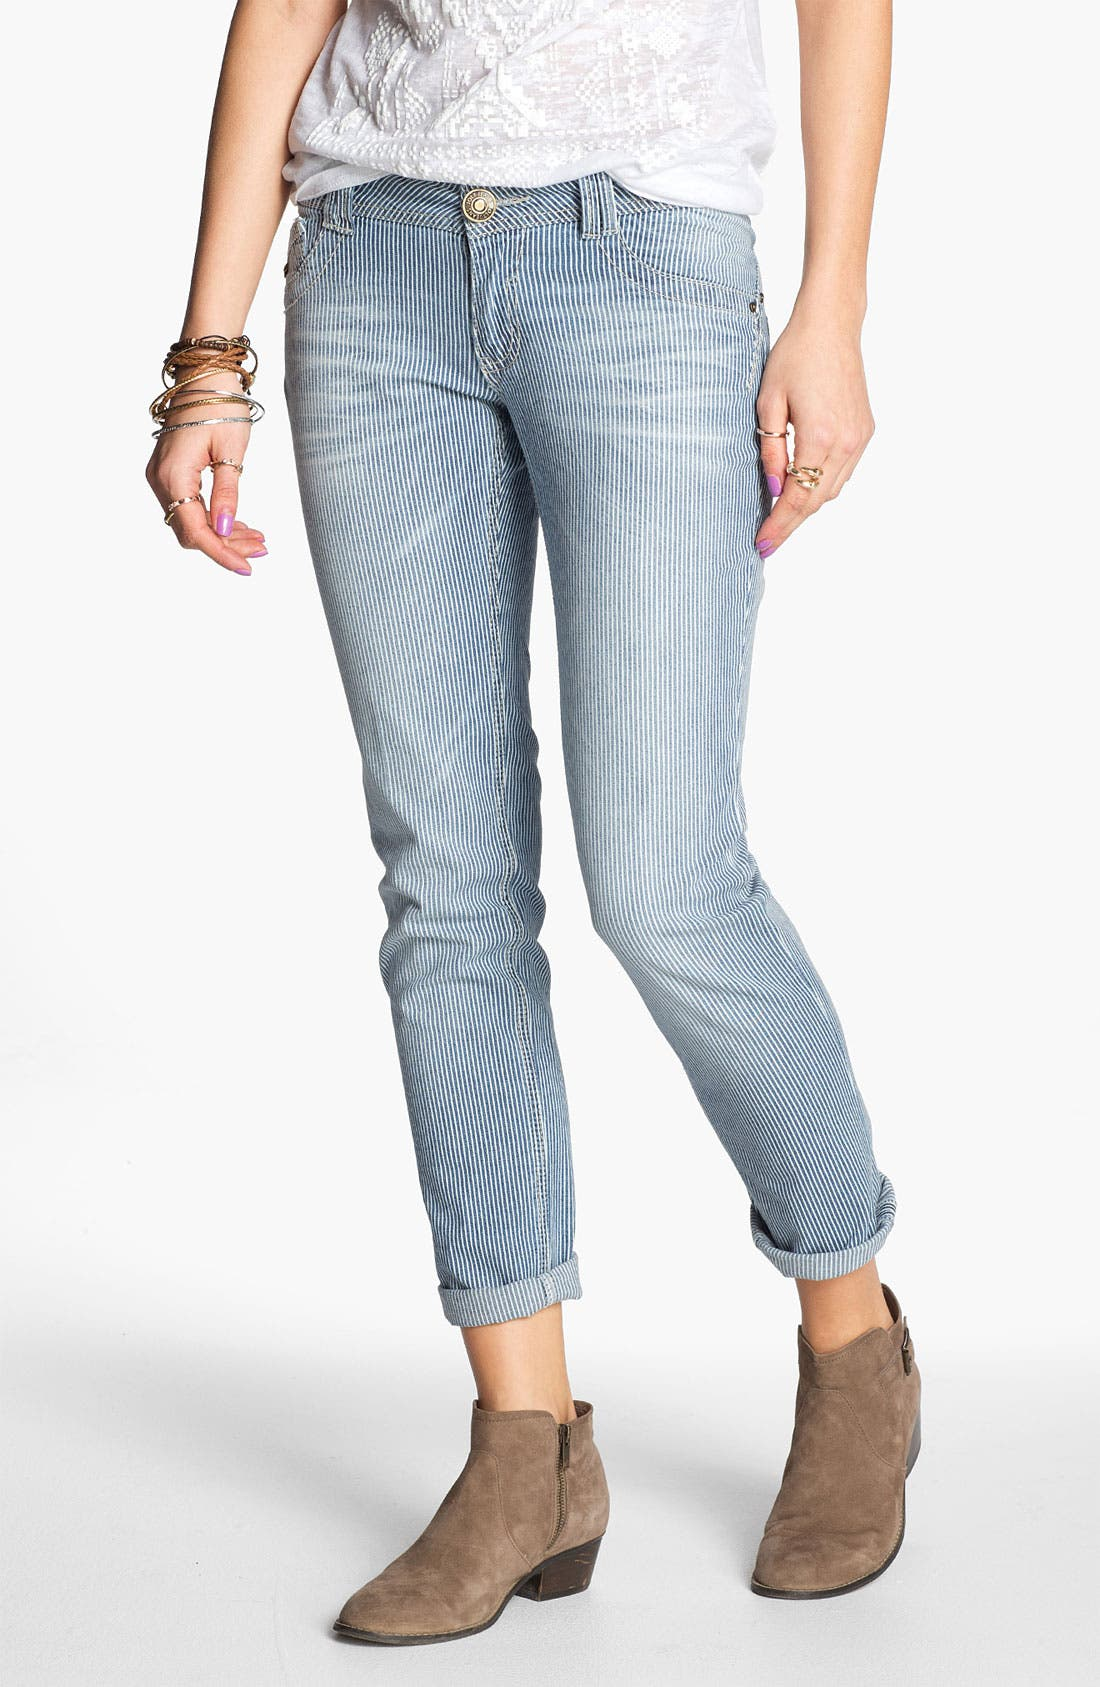 Alternate Image 1 Selected - Jolt 'Railroad Stripe' Crop Skinny Jeans (Juniors)